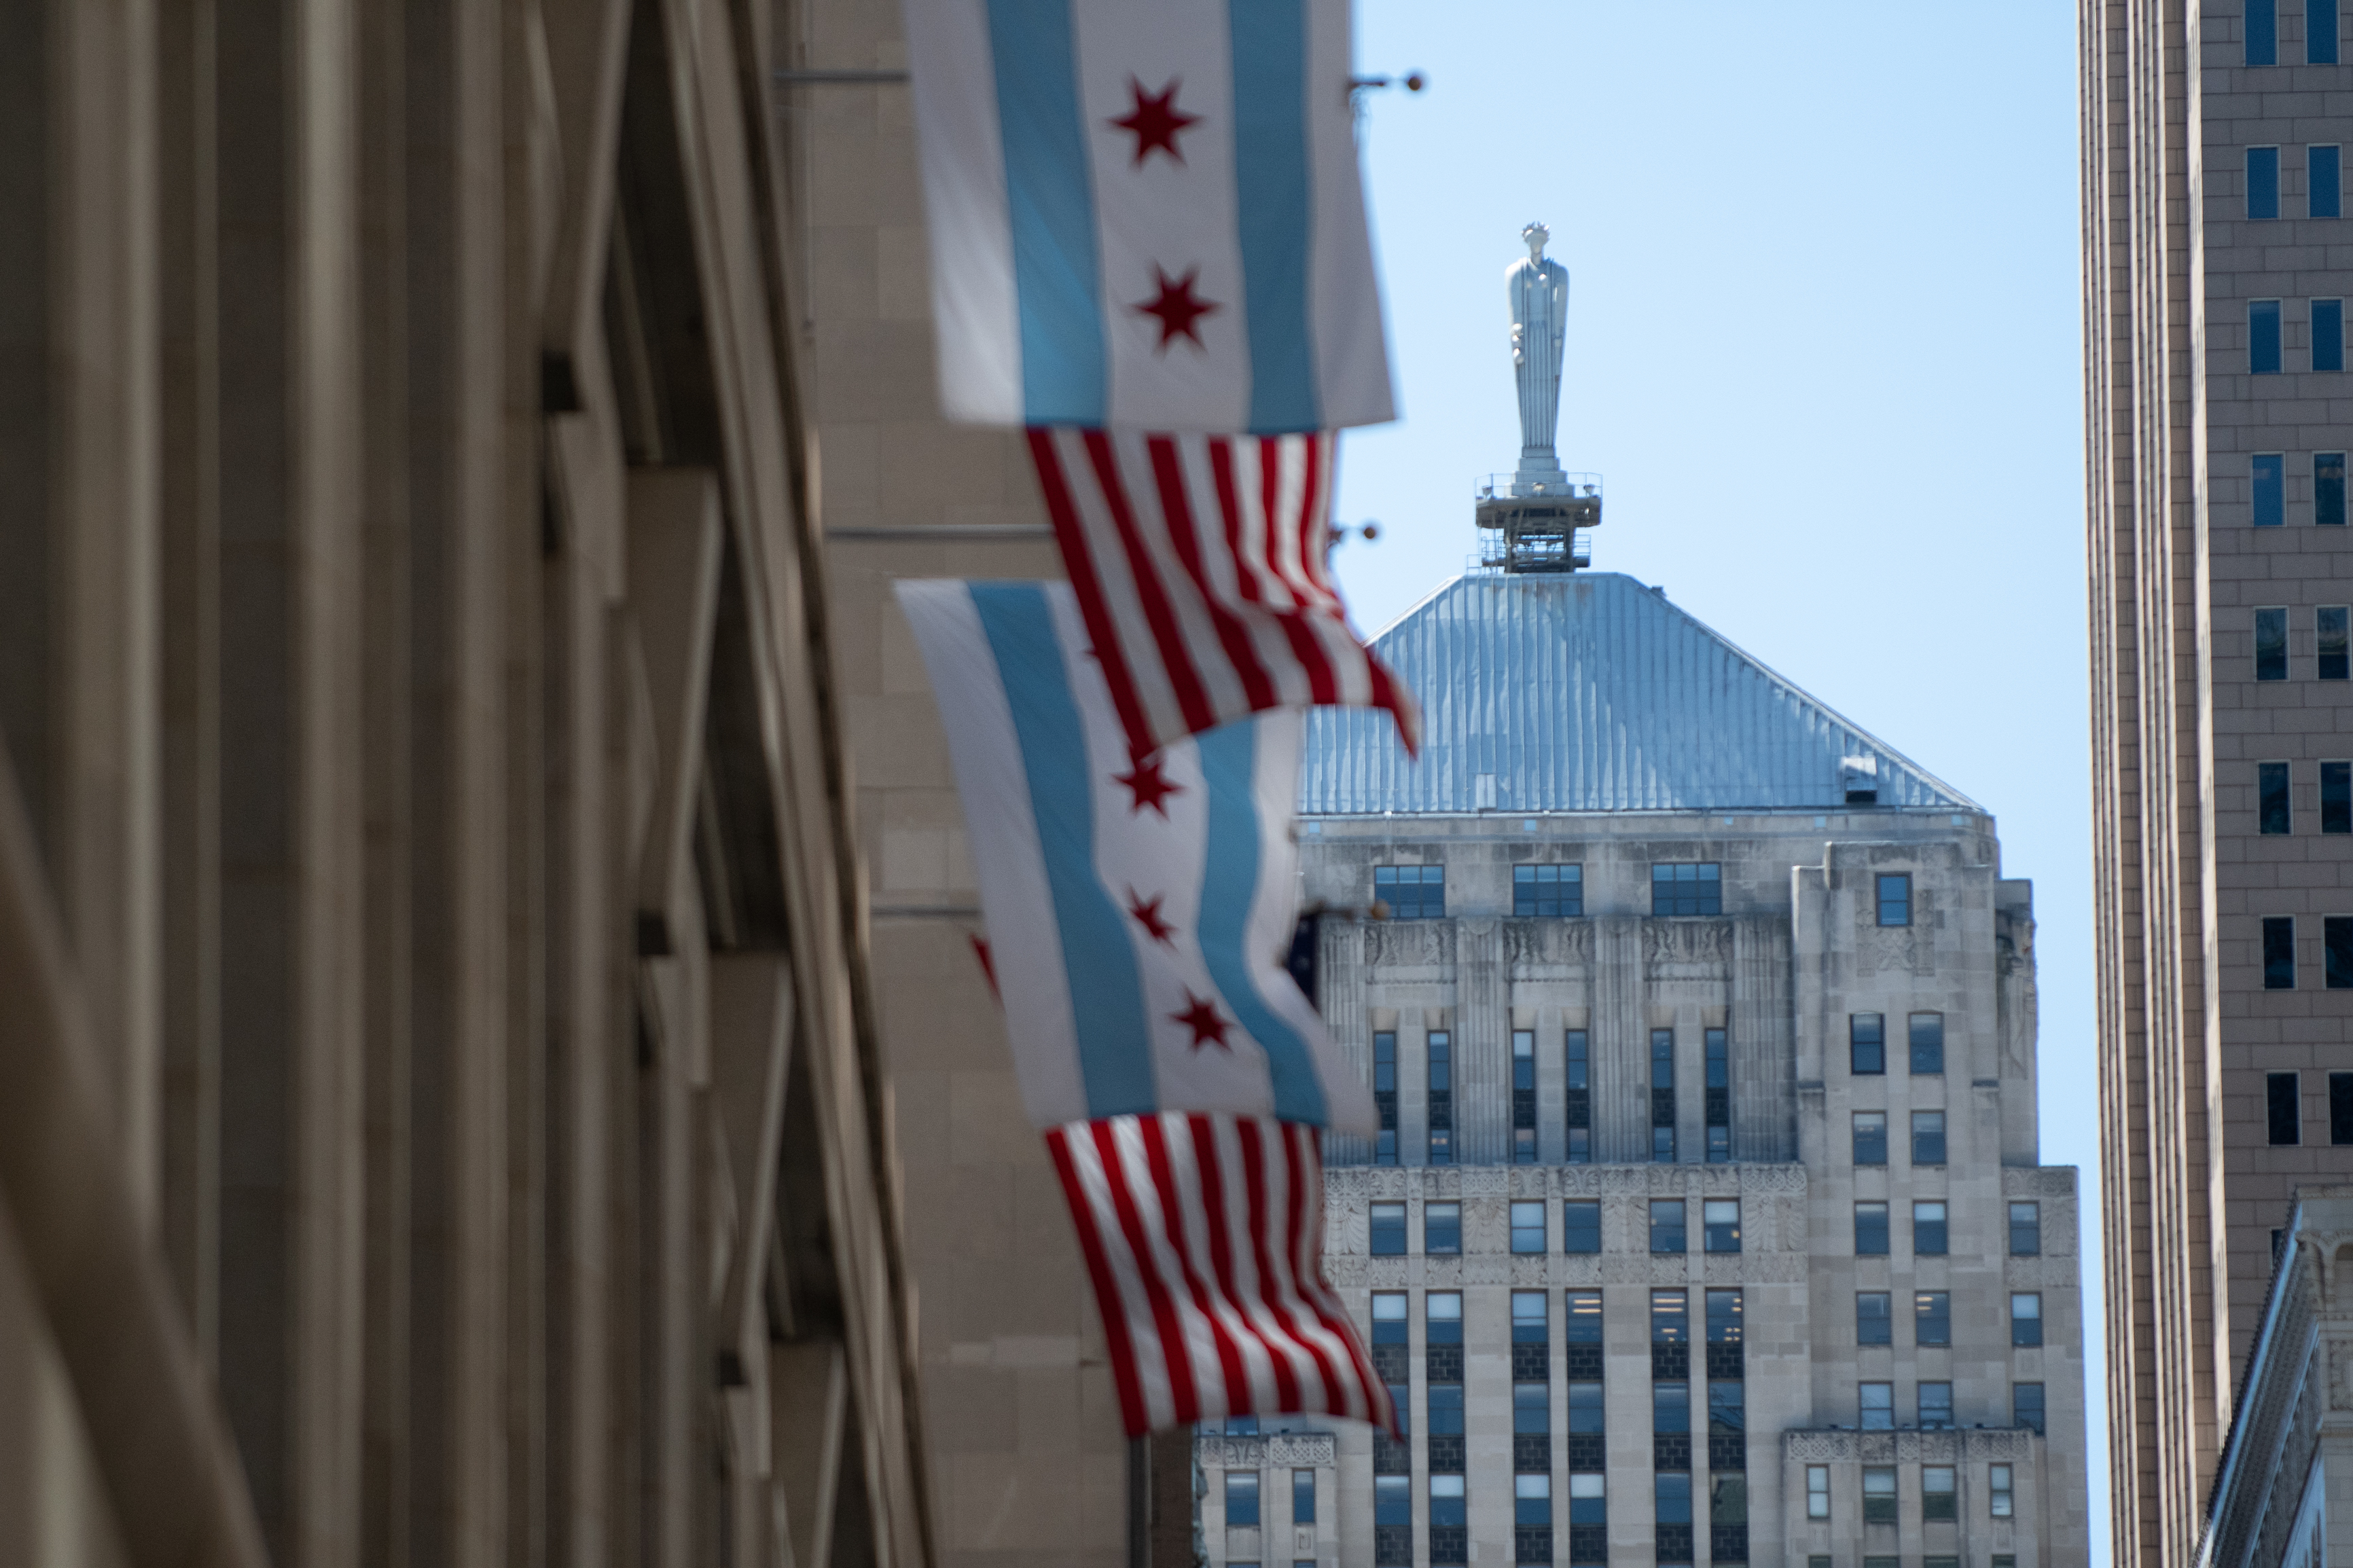 The Chicago and United States of America flags fly outside City Hall with the Chicago Board of Trade building in view on July 18, 2018.